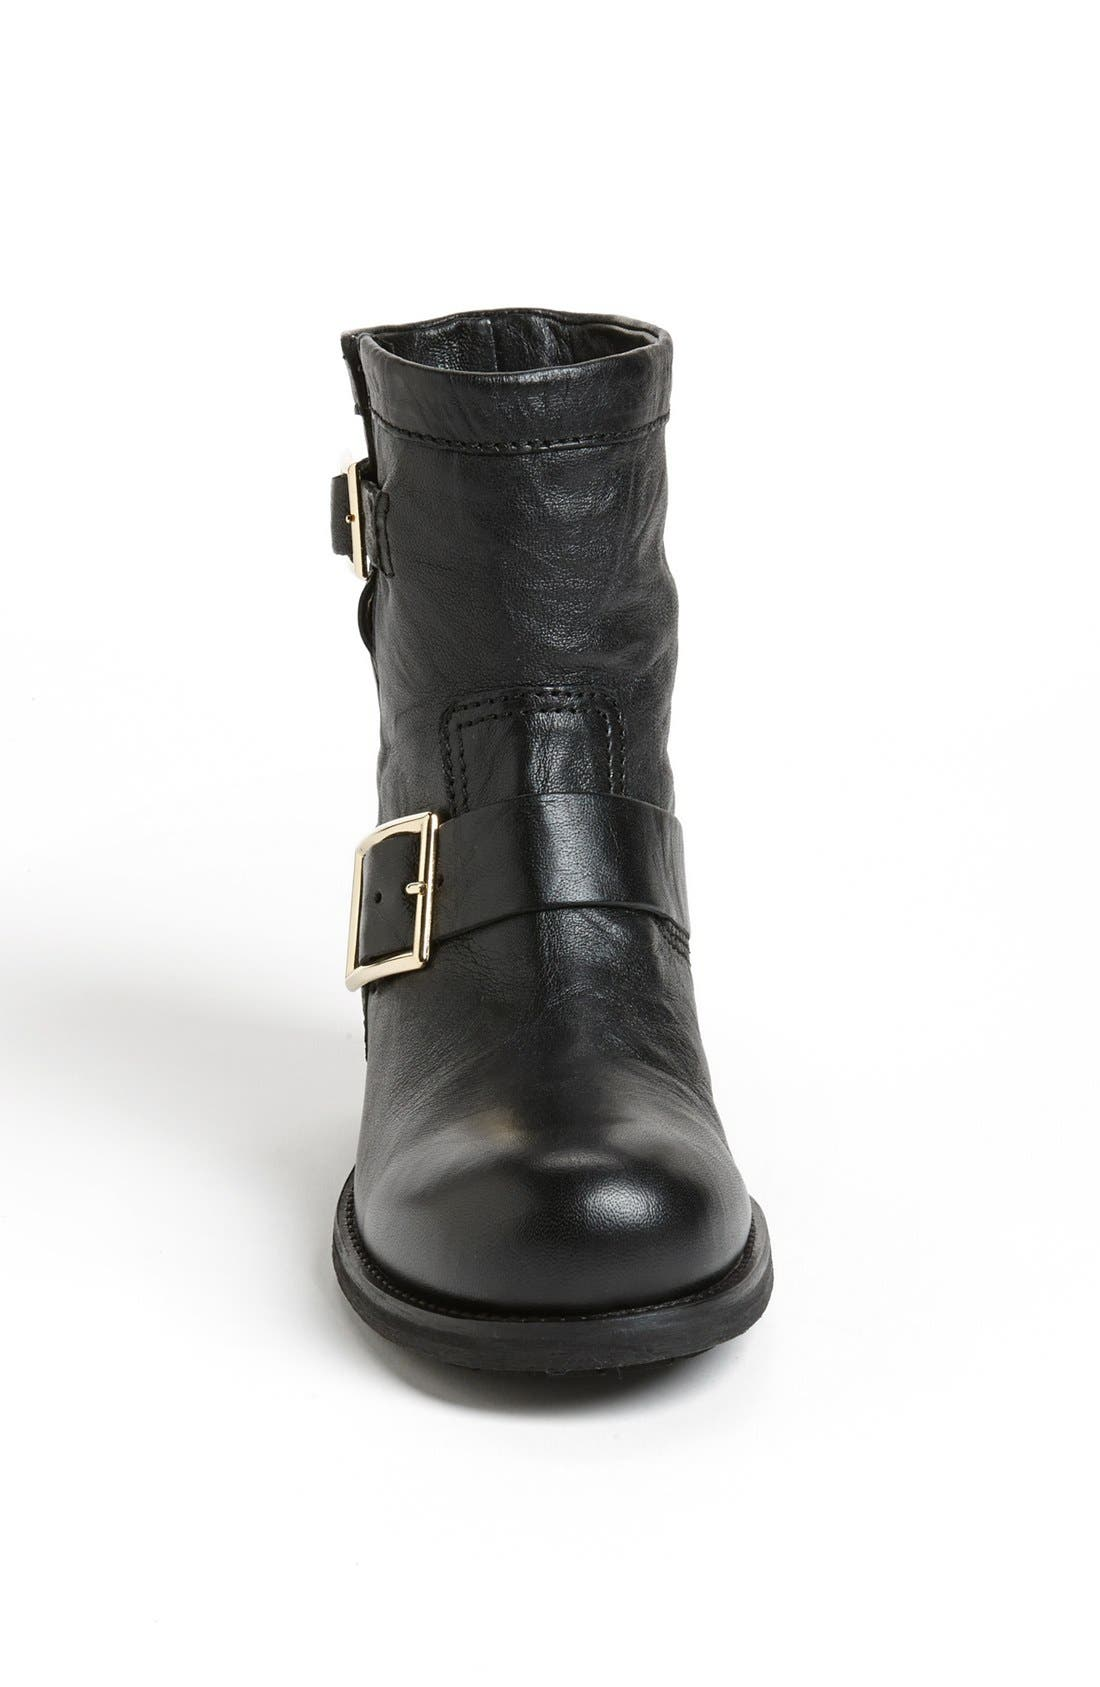 Alternate Image 3  - Jimmy Choo 'Youth' Short Biker Boot (Women)